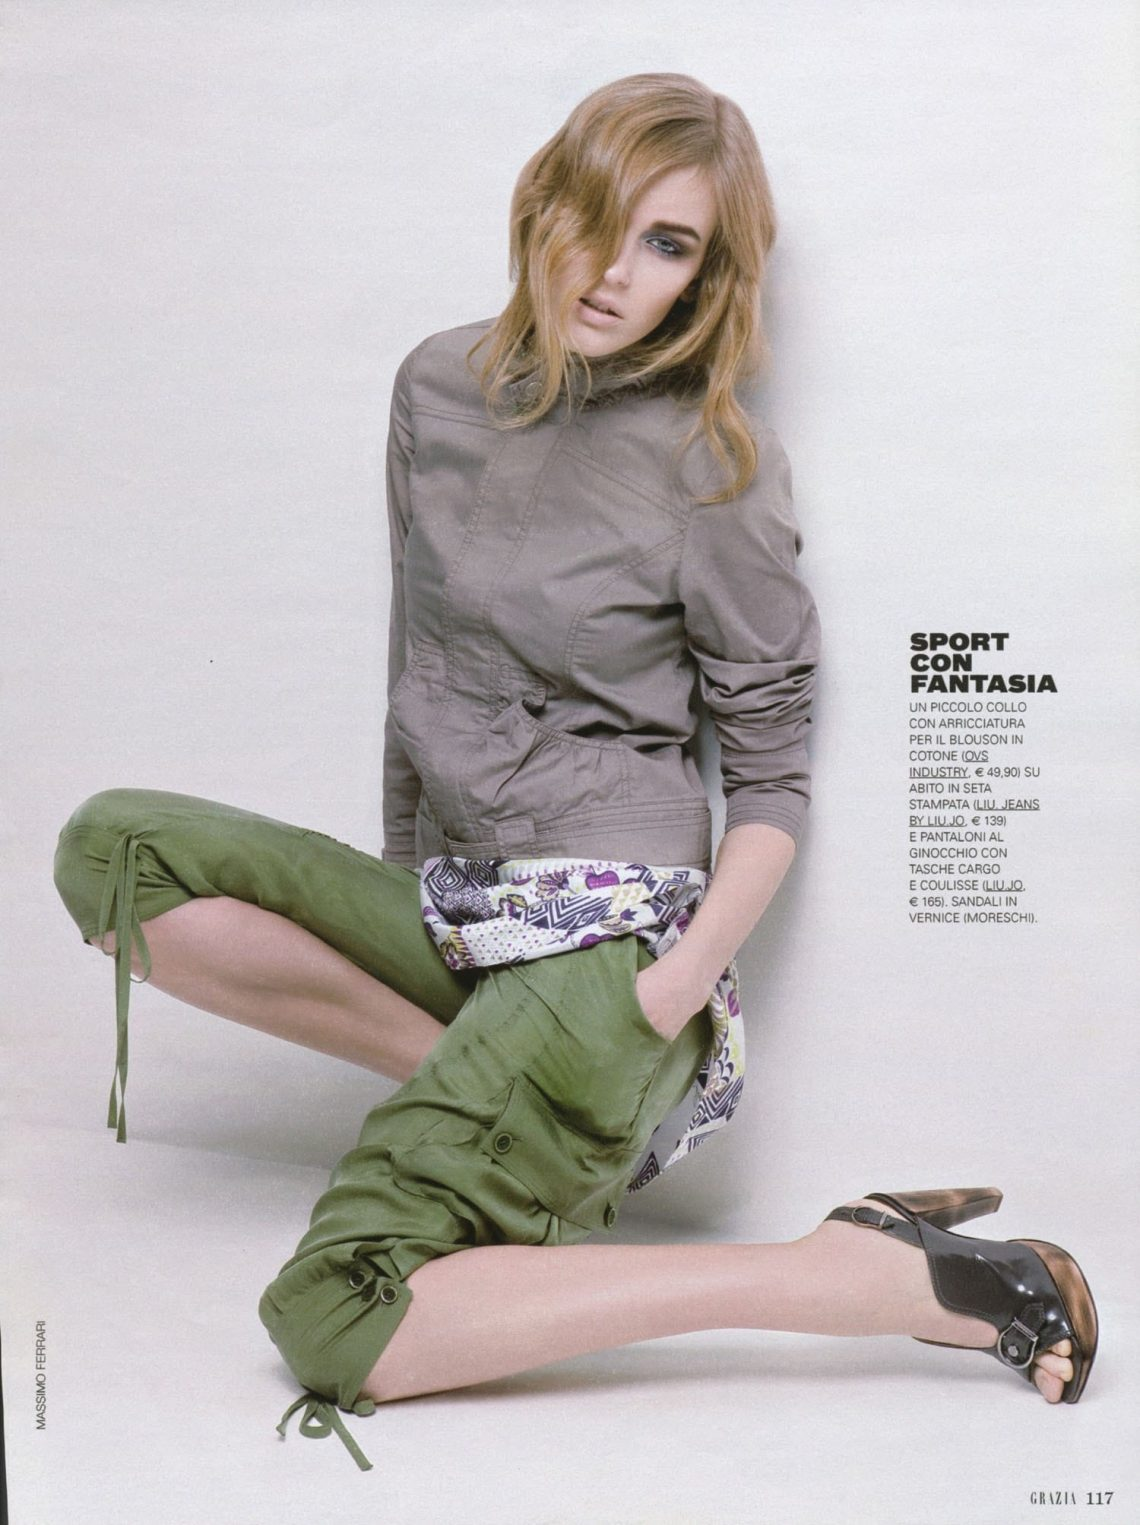 Balistarz-model-Zane-Garlaskelli-fashion-spread-on-grazia-magazine-sporty-look